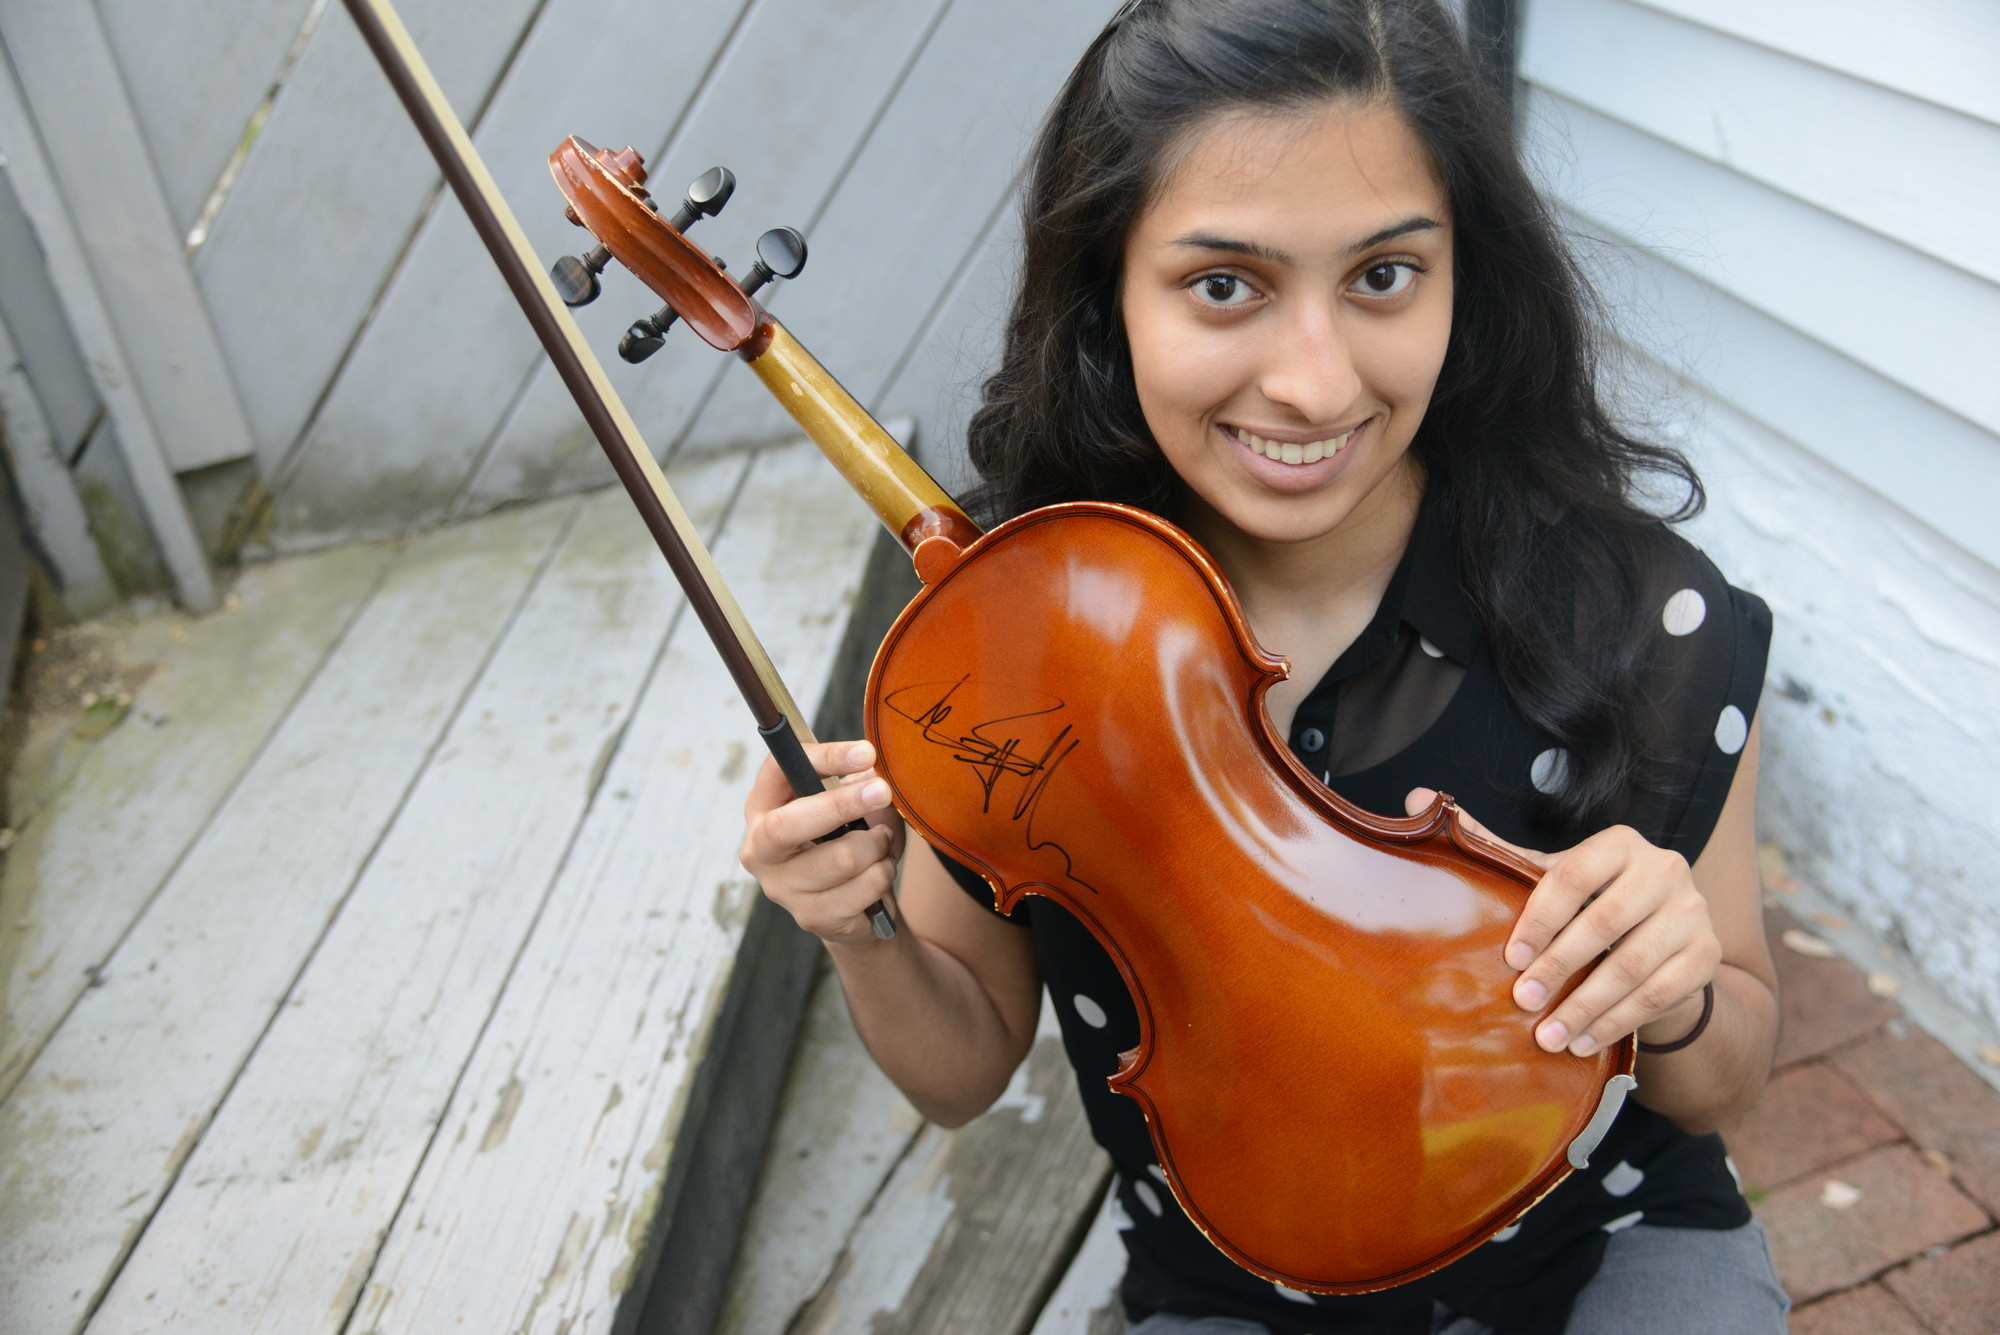 The sisters played at the NYCB Theatre in Westbury last December with the Piano Guys, a musical duo that combines classical and pop music. The group autographed Binita's violin.